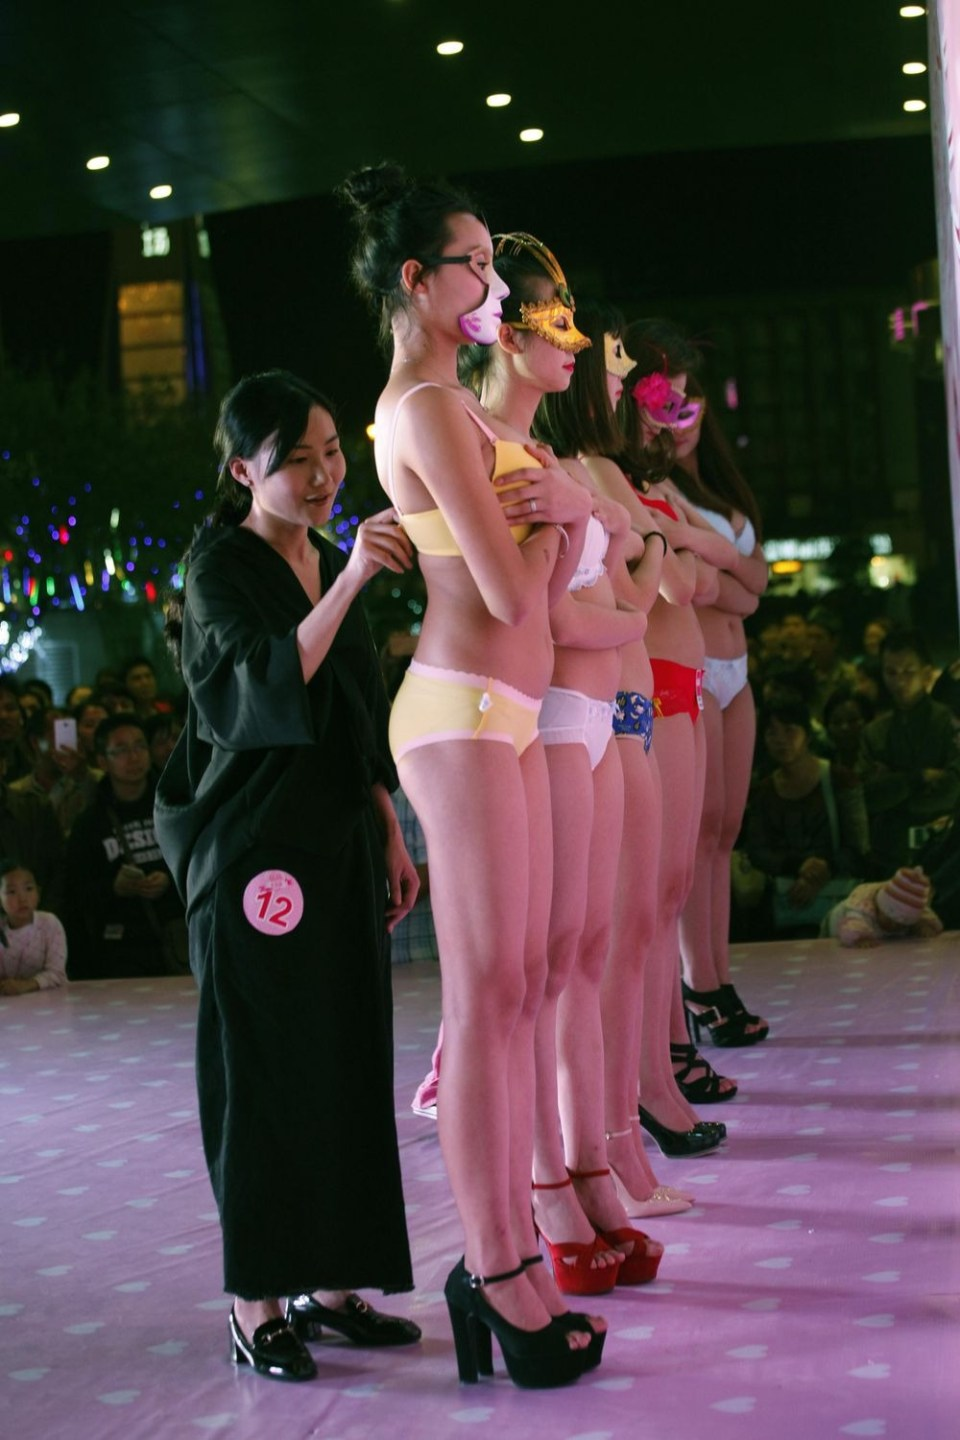 Bra Unbuckling Contest At Chinese Mall on Women's Day